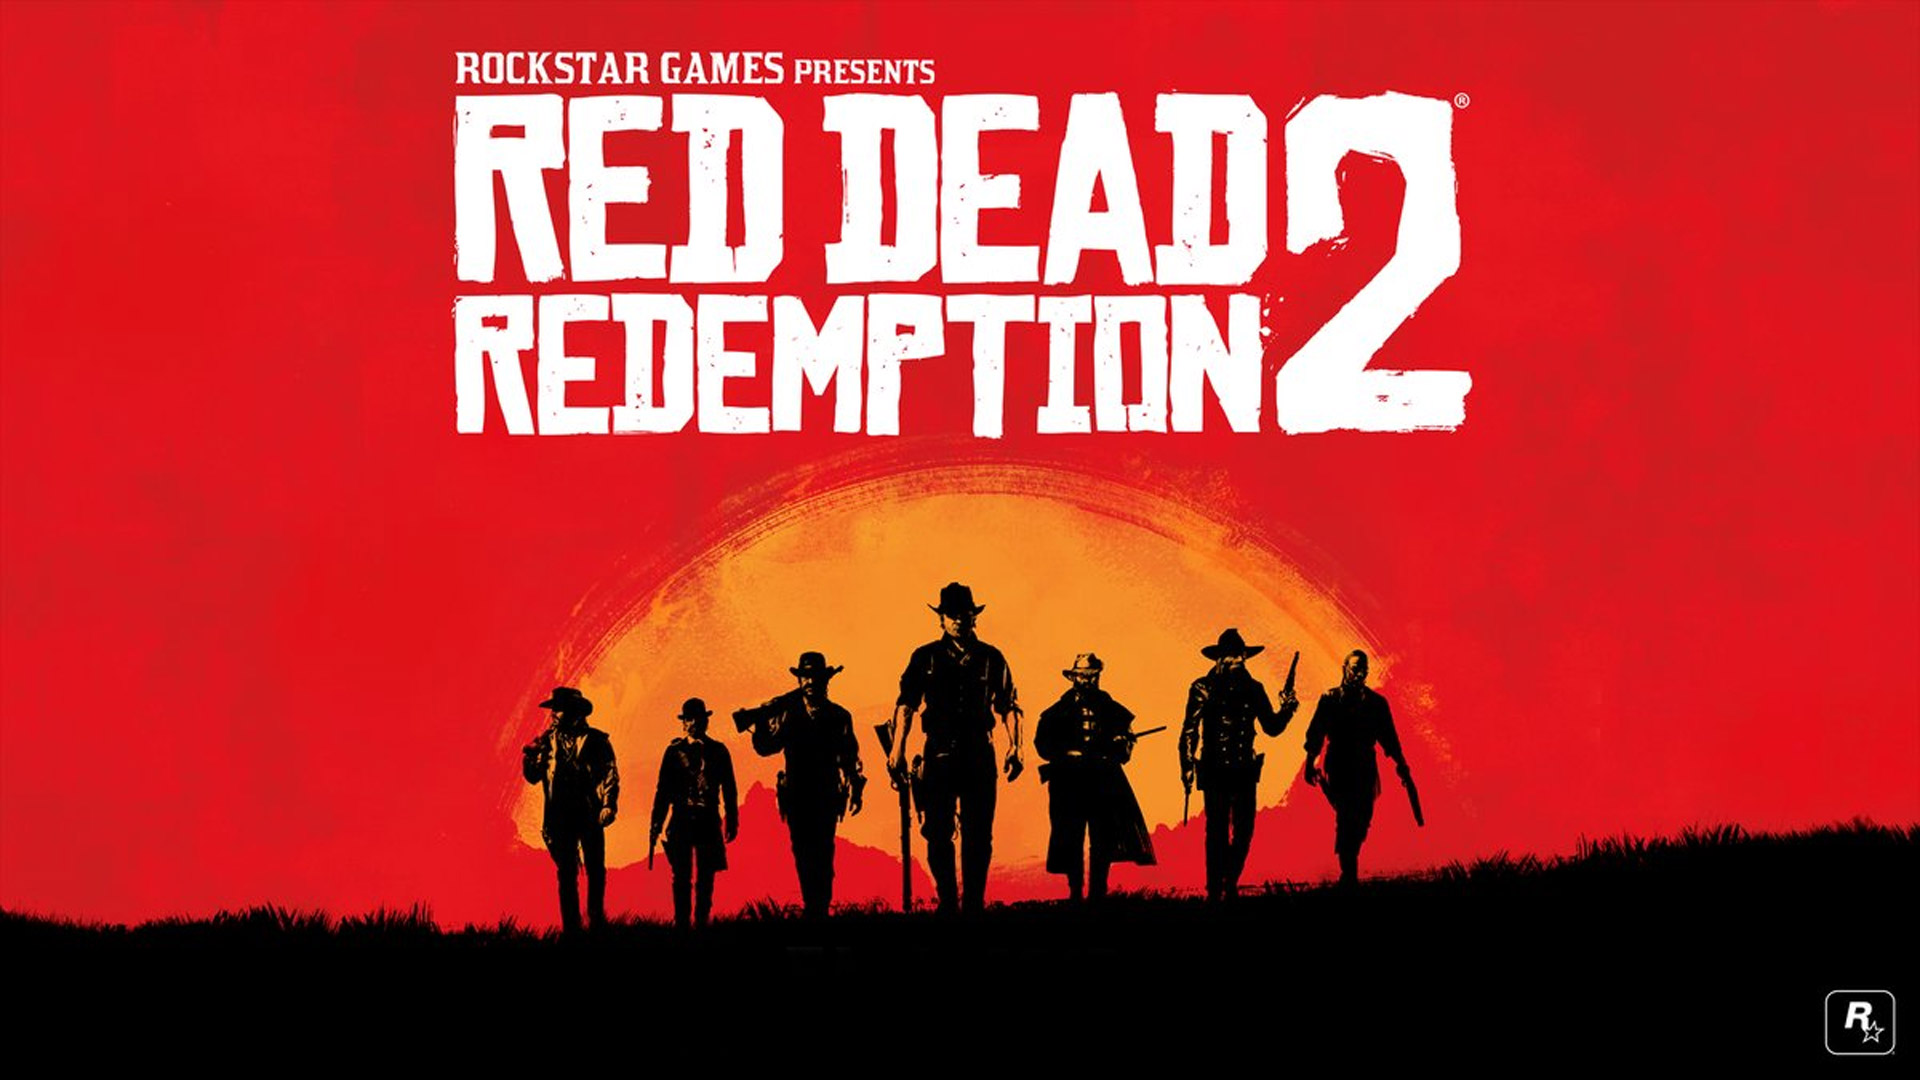 Red Dead Redemption 2 Wallpaper cover art